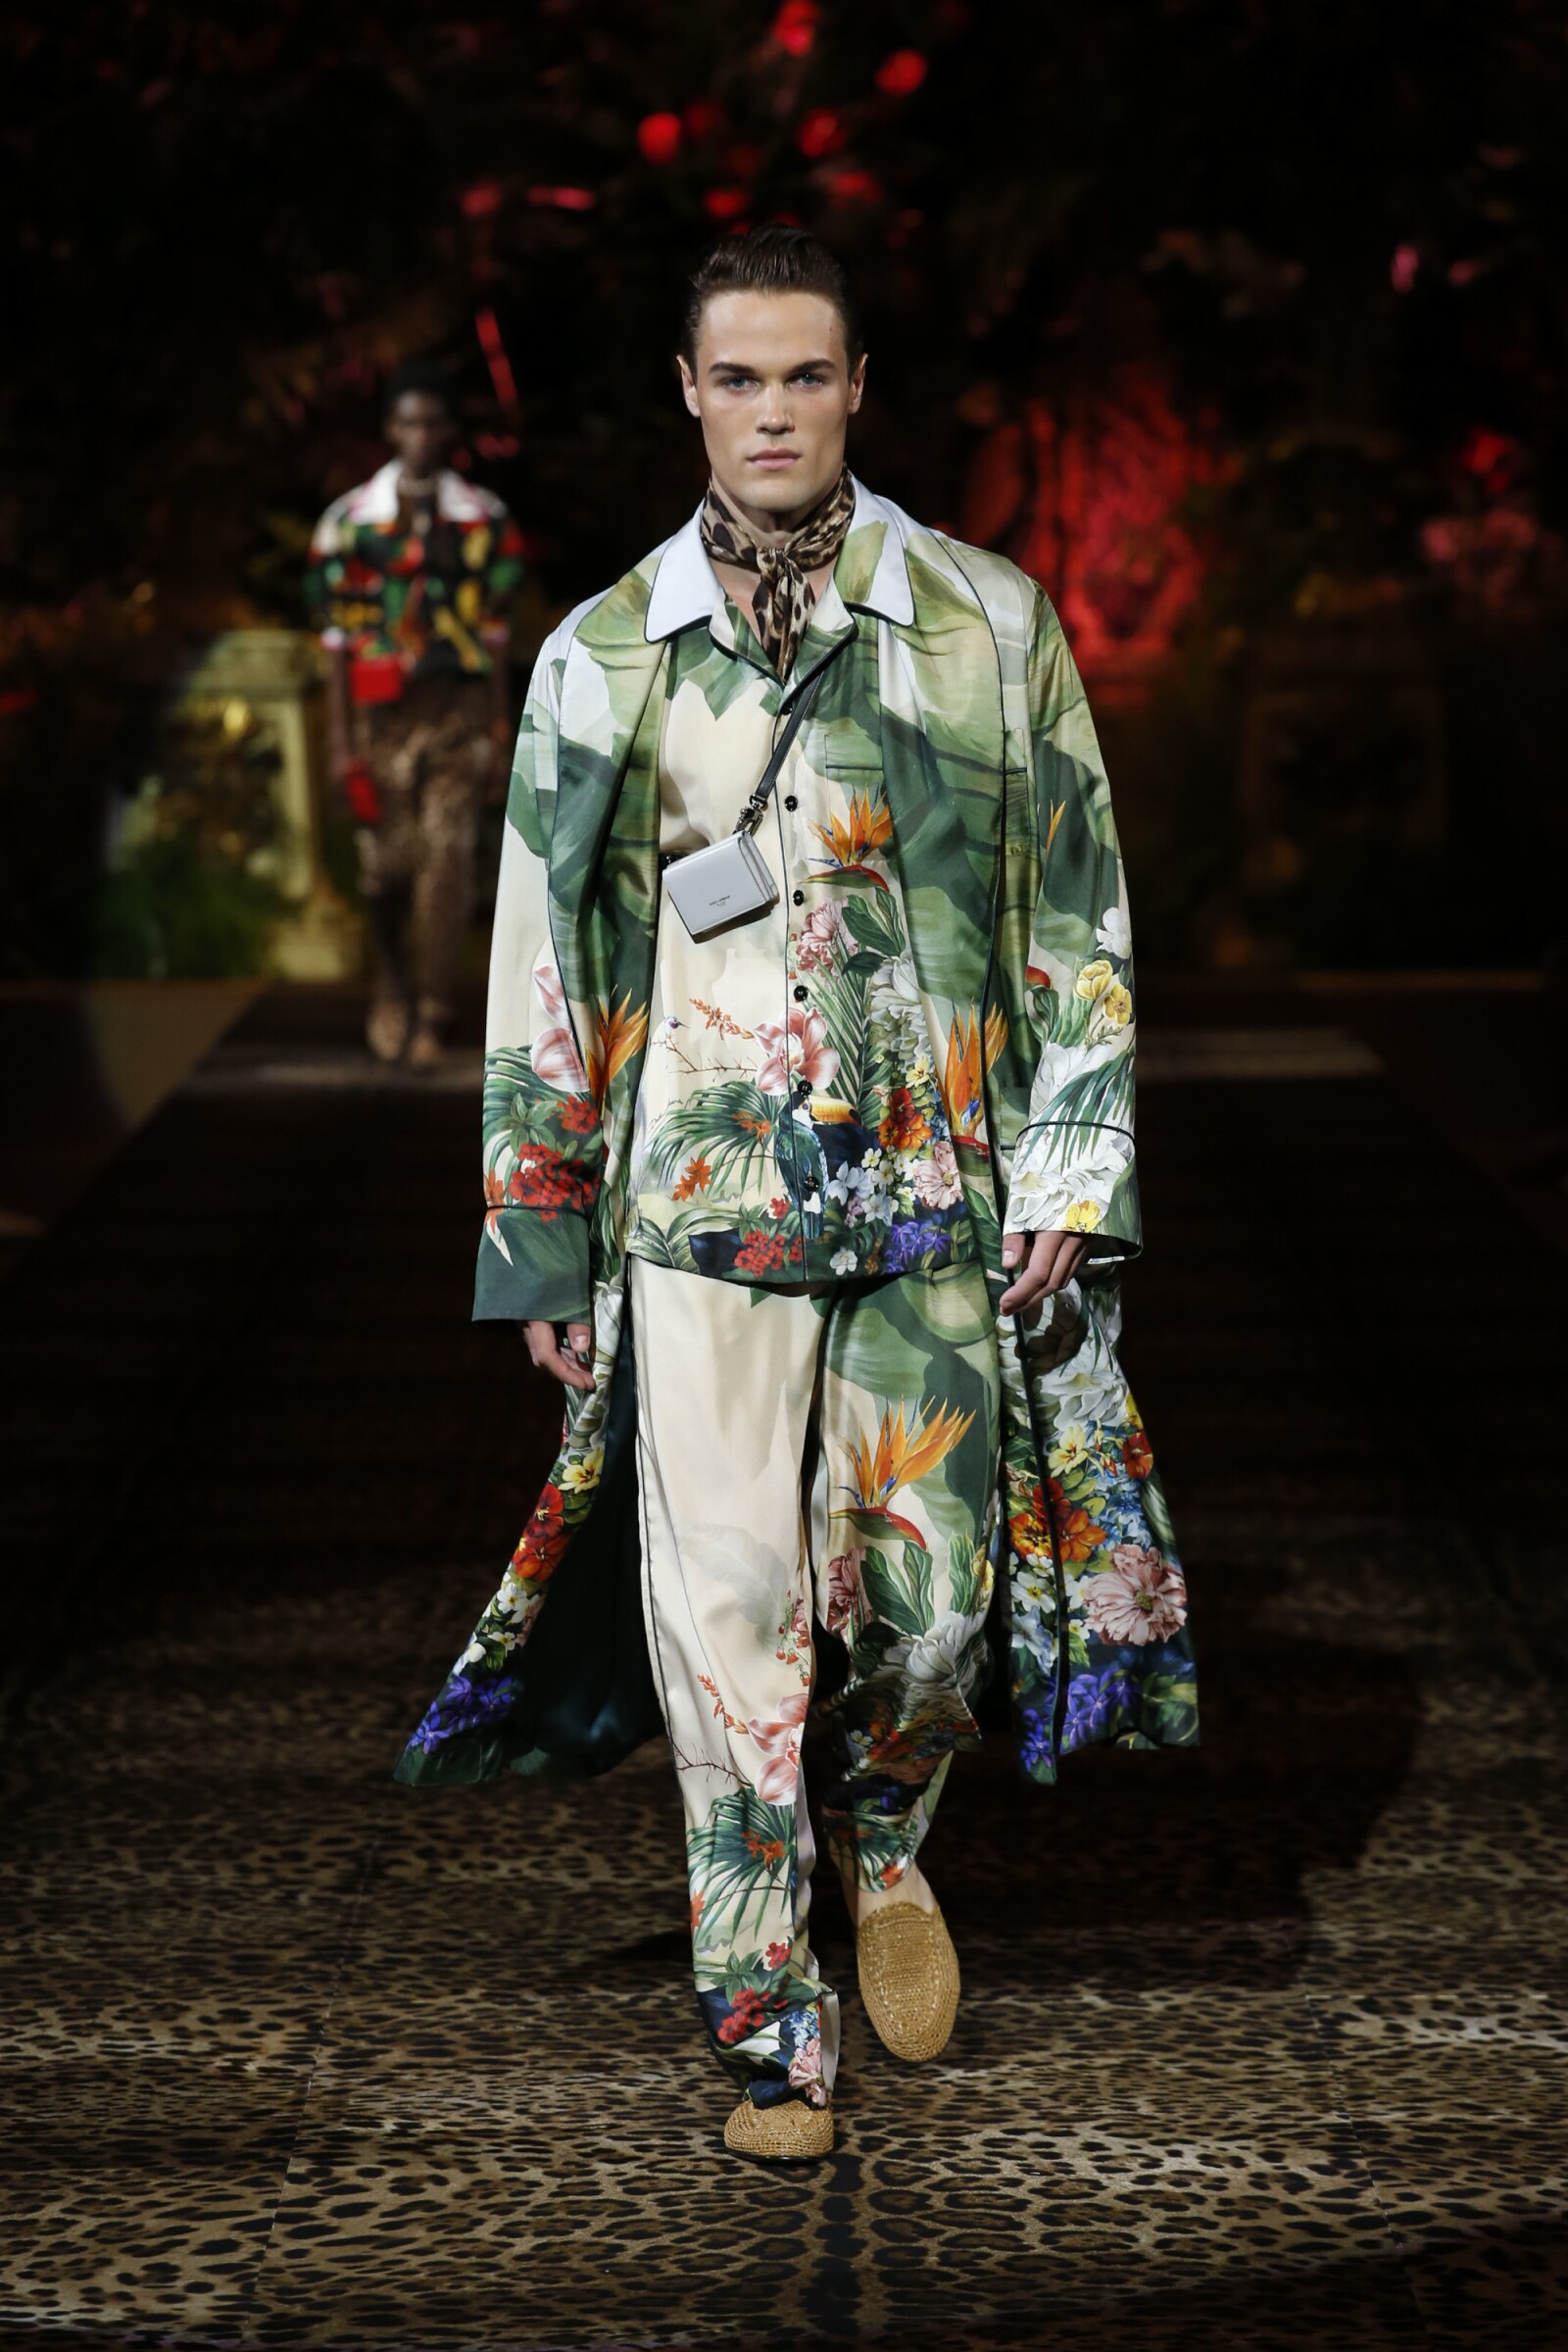 Dolce&Gabbana Men's Fashion Show Spring-Summer 2020 (26).jpg